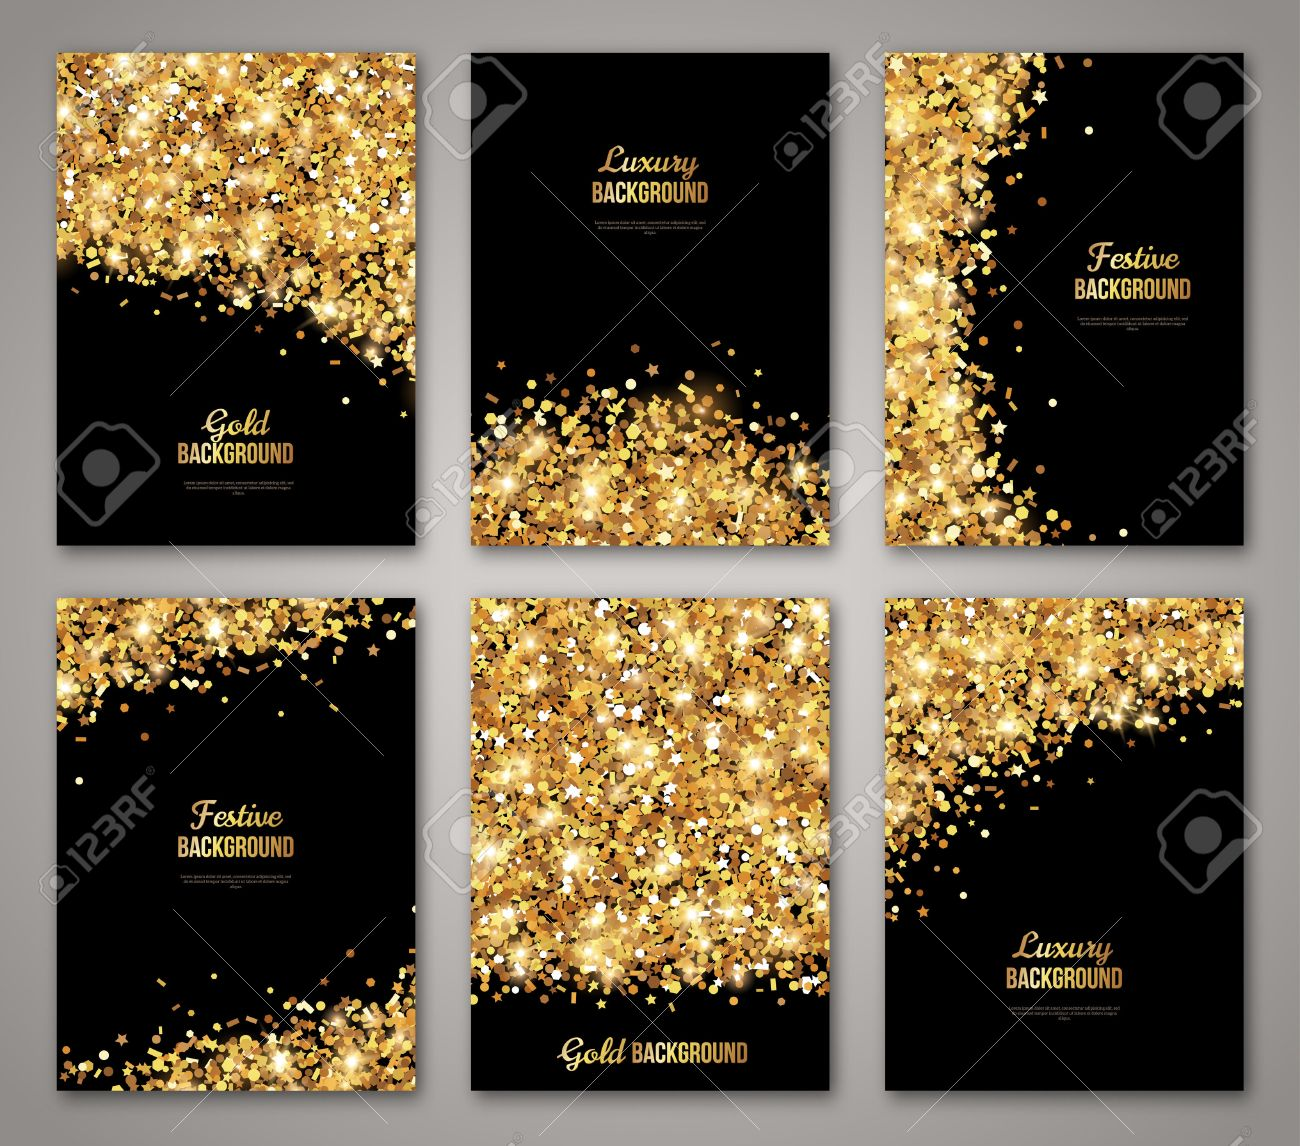 Set Of Black And Gold , Greeting Card Design. Golden Dust. Illustration...  Royalty Free Cliparts, Vectors, And Stock Illustration. Image 51299263.